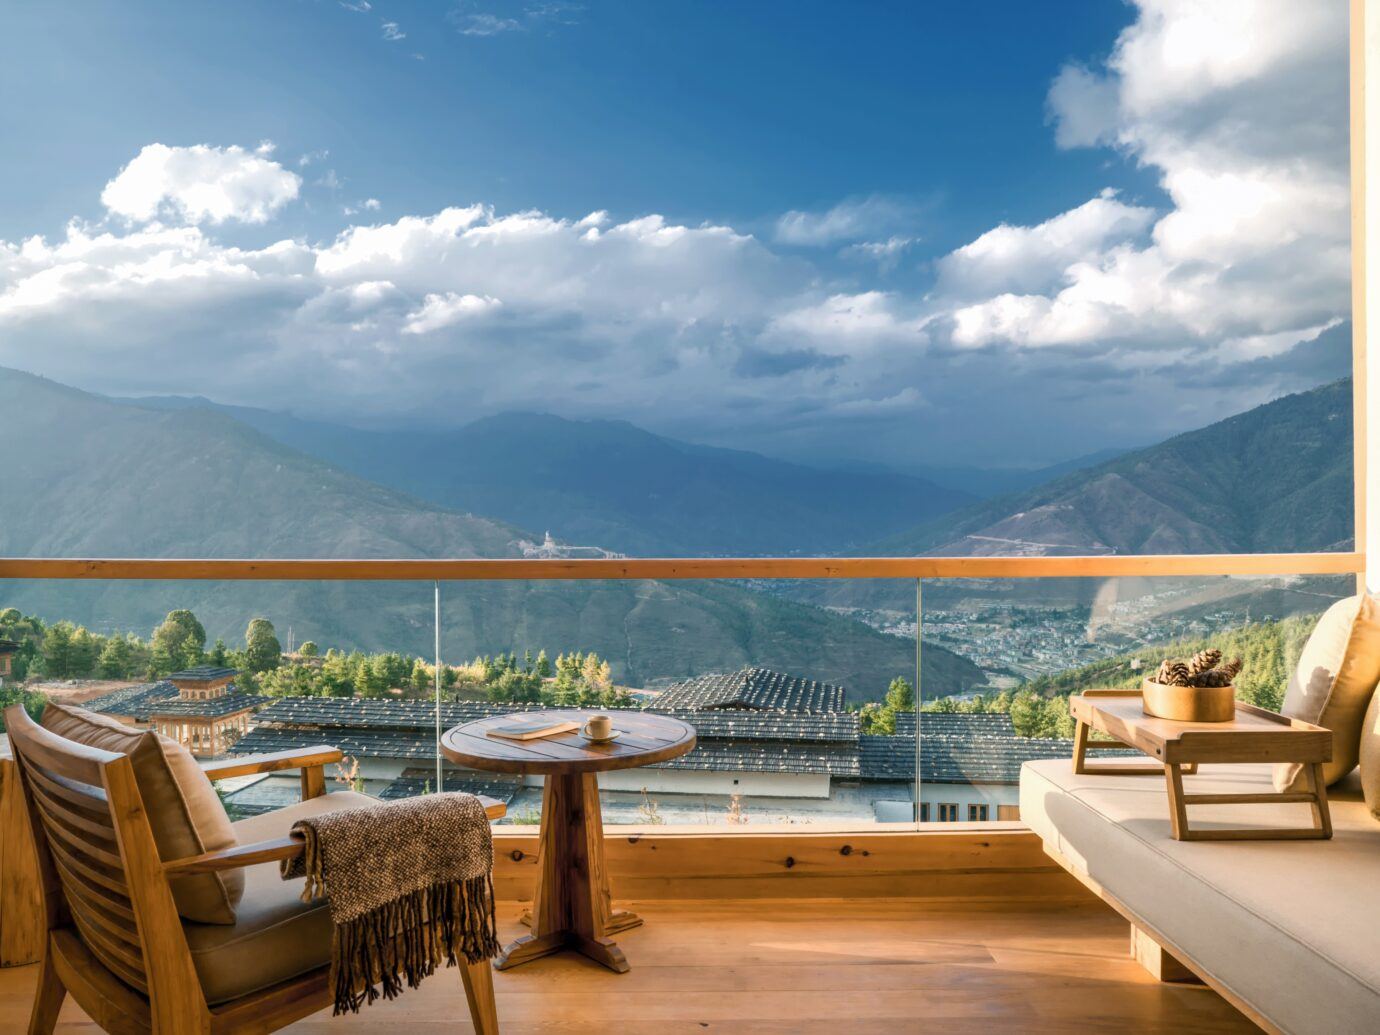 View from the balcony at Six Senses Bhutan